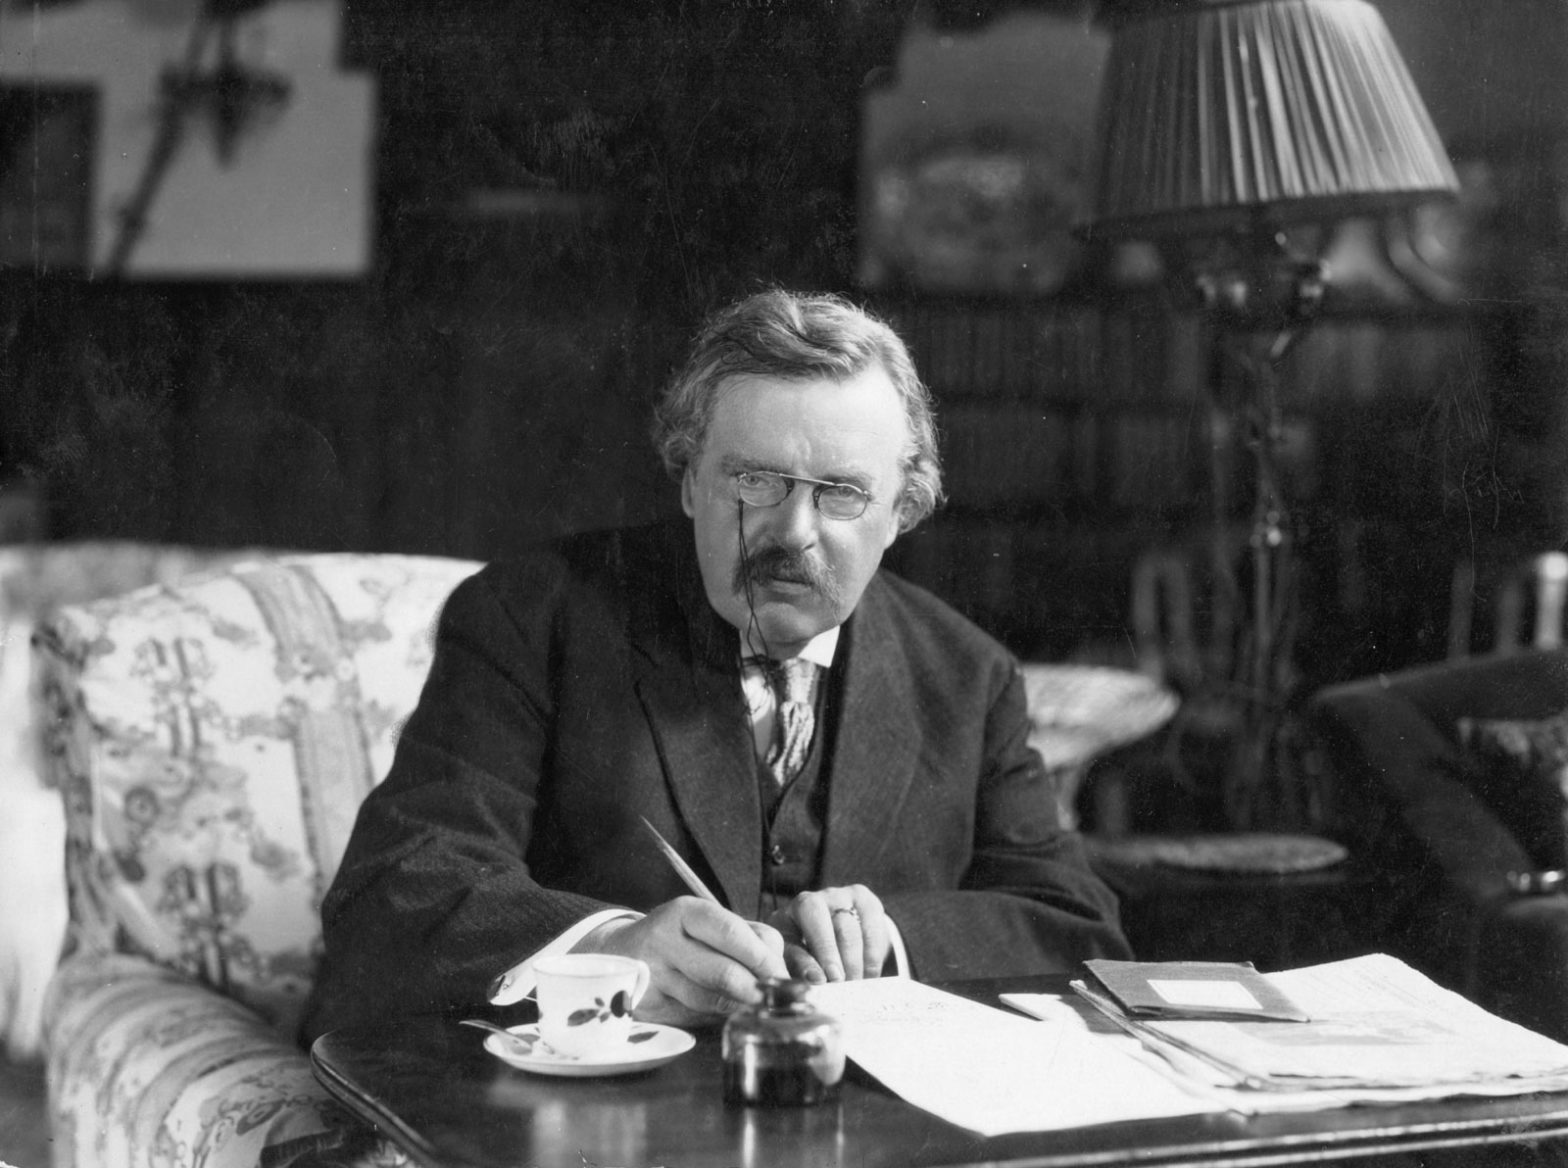 G.K. Chesterton at work